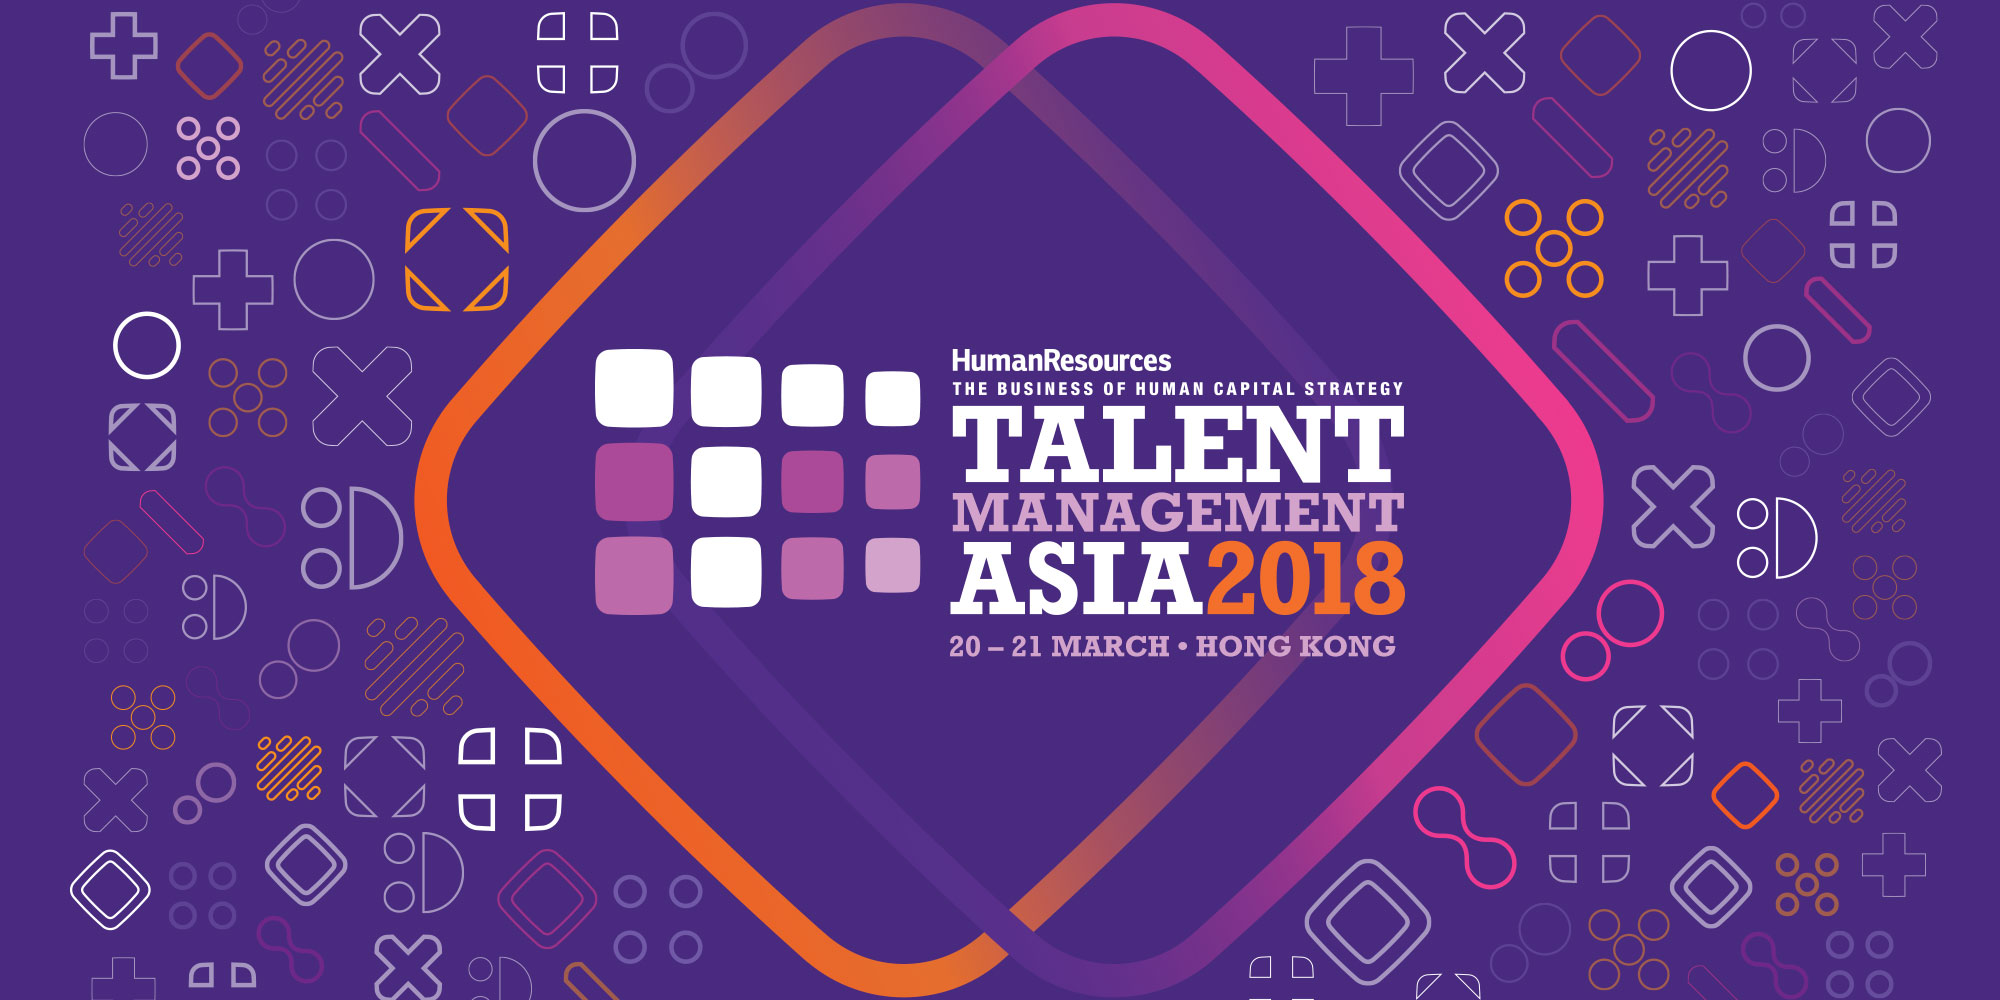 case study human resources management asia pacific Paul donnelly global head, data management and project systems paul manages the data management team delivering support for the various research projects conducted including clinical trials, observational studies and surveys.